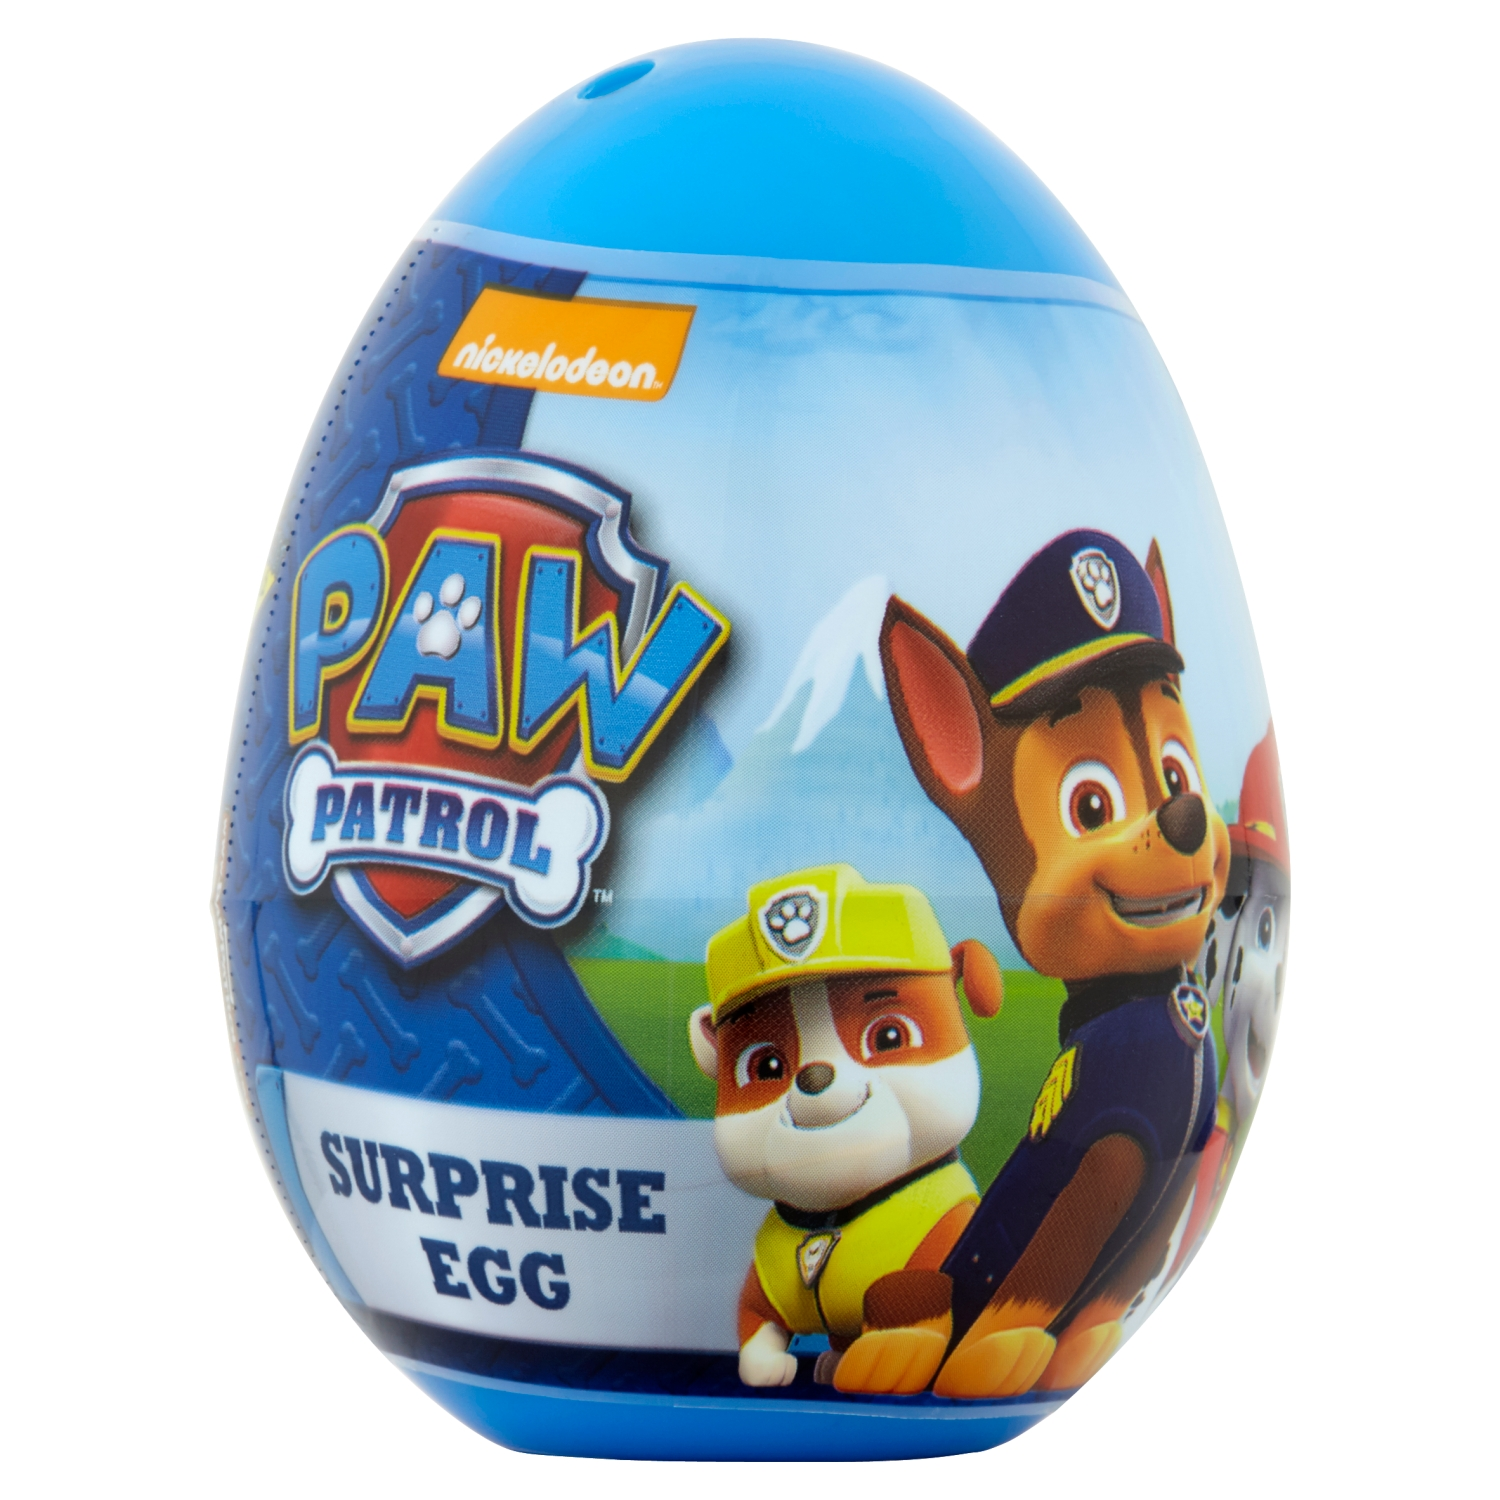 Surprise Egg with Jelly Beans & Collectable Toy 10g